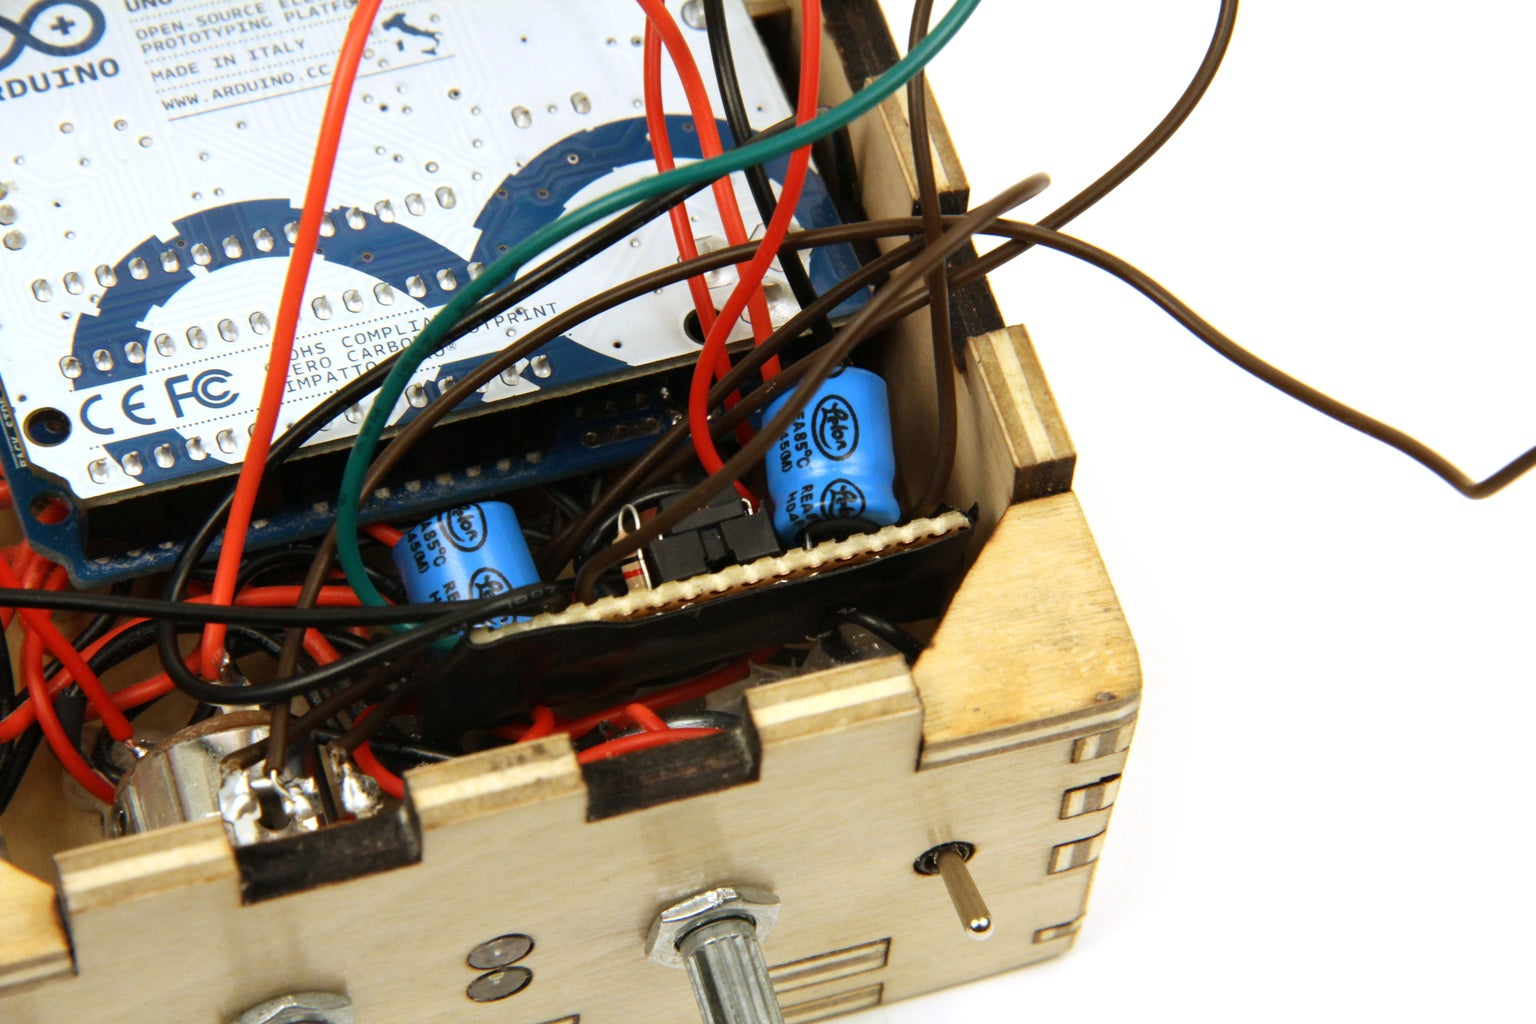 Install Components in Enclosure